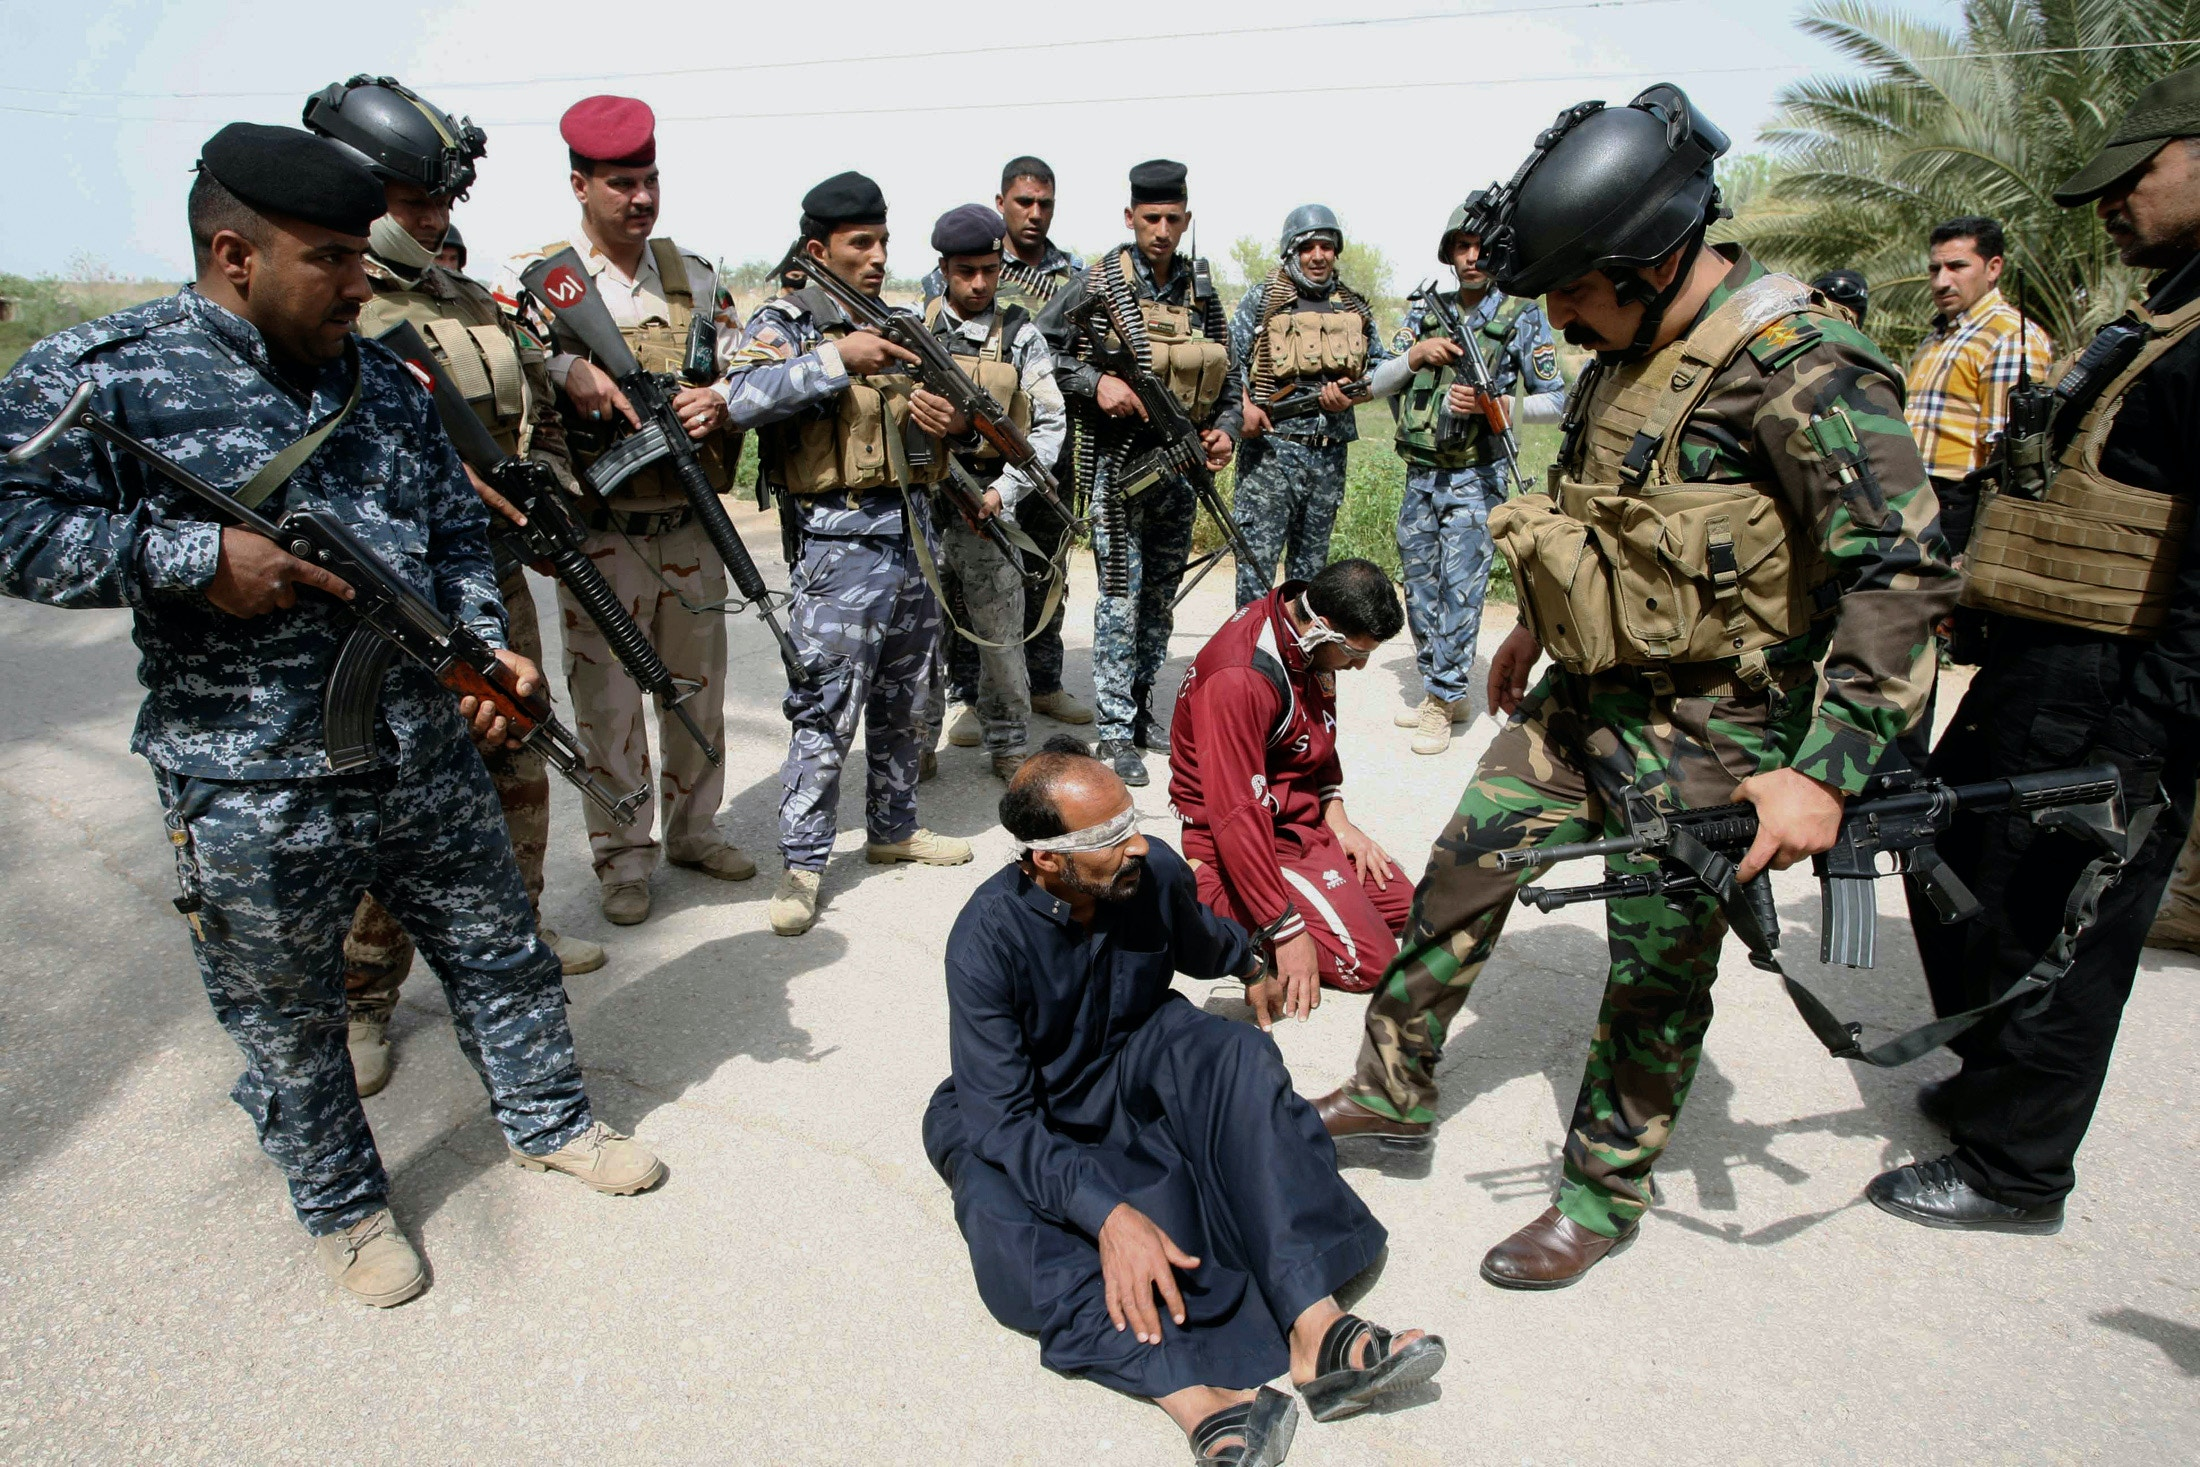 Personnel from the Iraqi security forces arrest suspected militants of the al Qaeda-linked Islamic State in Iraq and the Levant (ISIL), during clashes with Iraqi security forces in Jurf al-Sakhar March 17, 2014.   REUTERS/Alaa Al-Marjani (IRAQ - Tags - Tags: CIVIL UNREST CRIME LAW MILITARY) - GM1EA3I0G4Q01